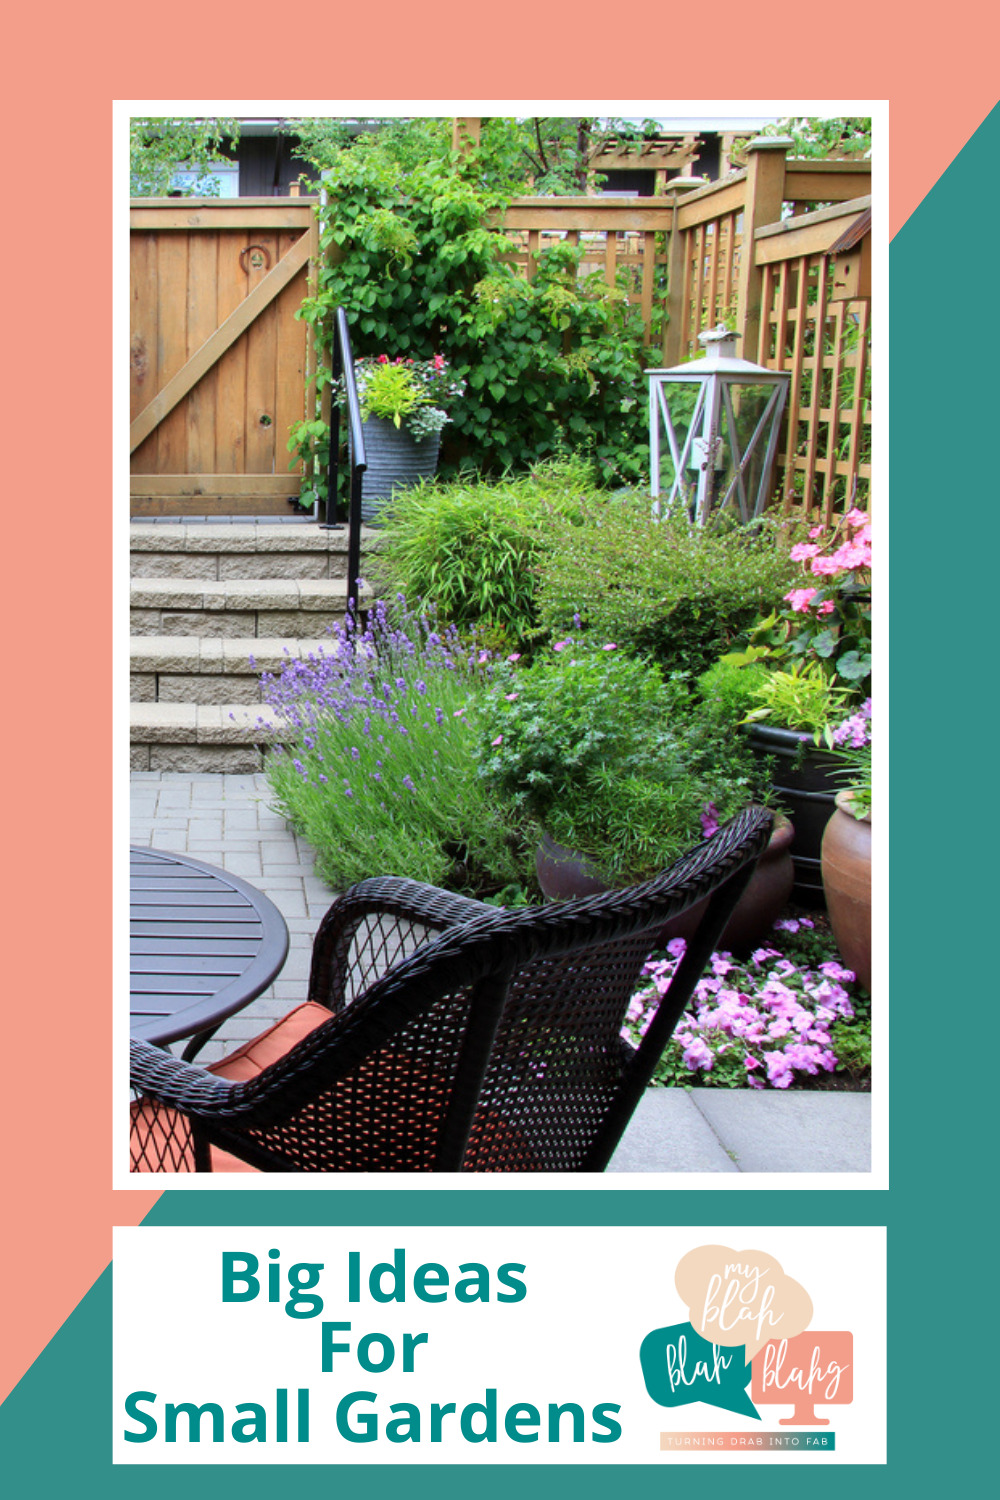 Myblahblahblahg.com has fun ideas for every season! Get ready for the warmer months with cheery florals and inspired projects! These ideas will make the most of your small garden space!